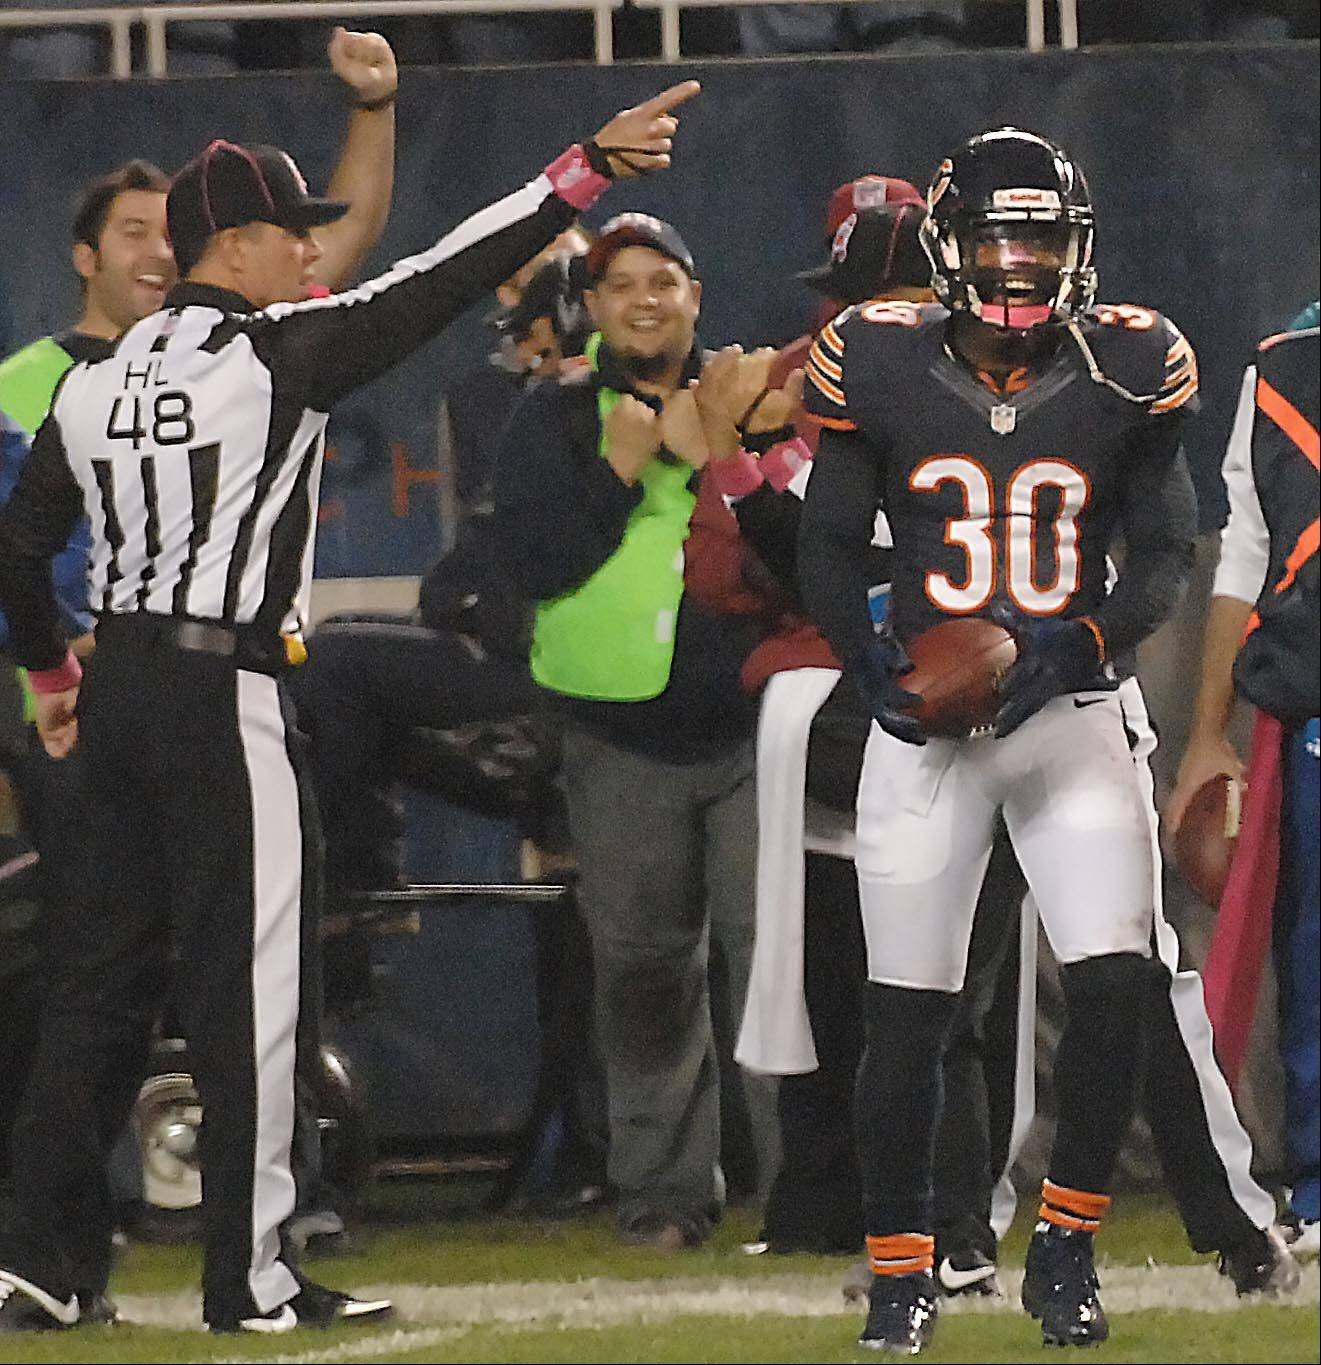 Bears cornerback D.J. Moore laughs as the referee signals interception late in the game Monday at Soldier Field.